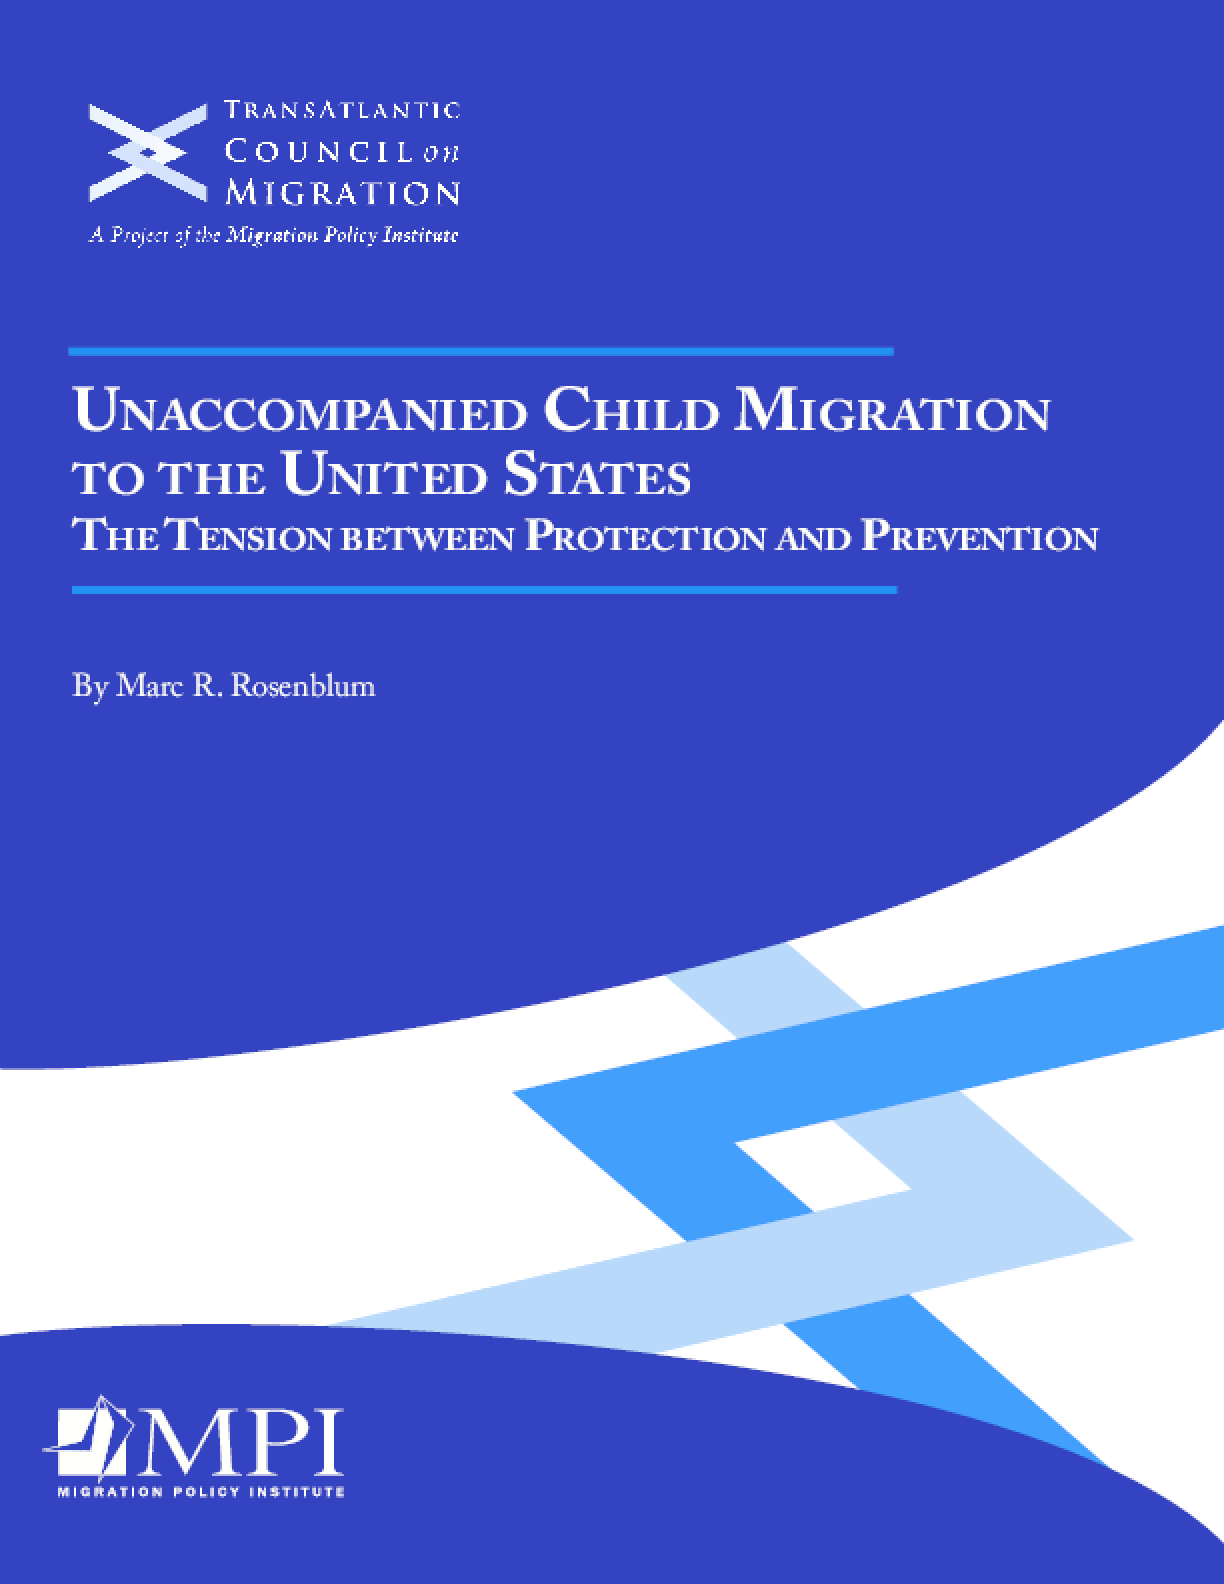 Unaccompanied Child Migration to the United States: The Tension between Protection and Prevention